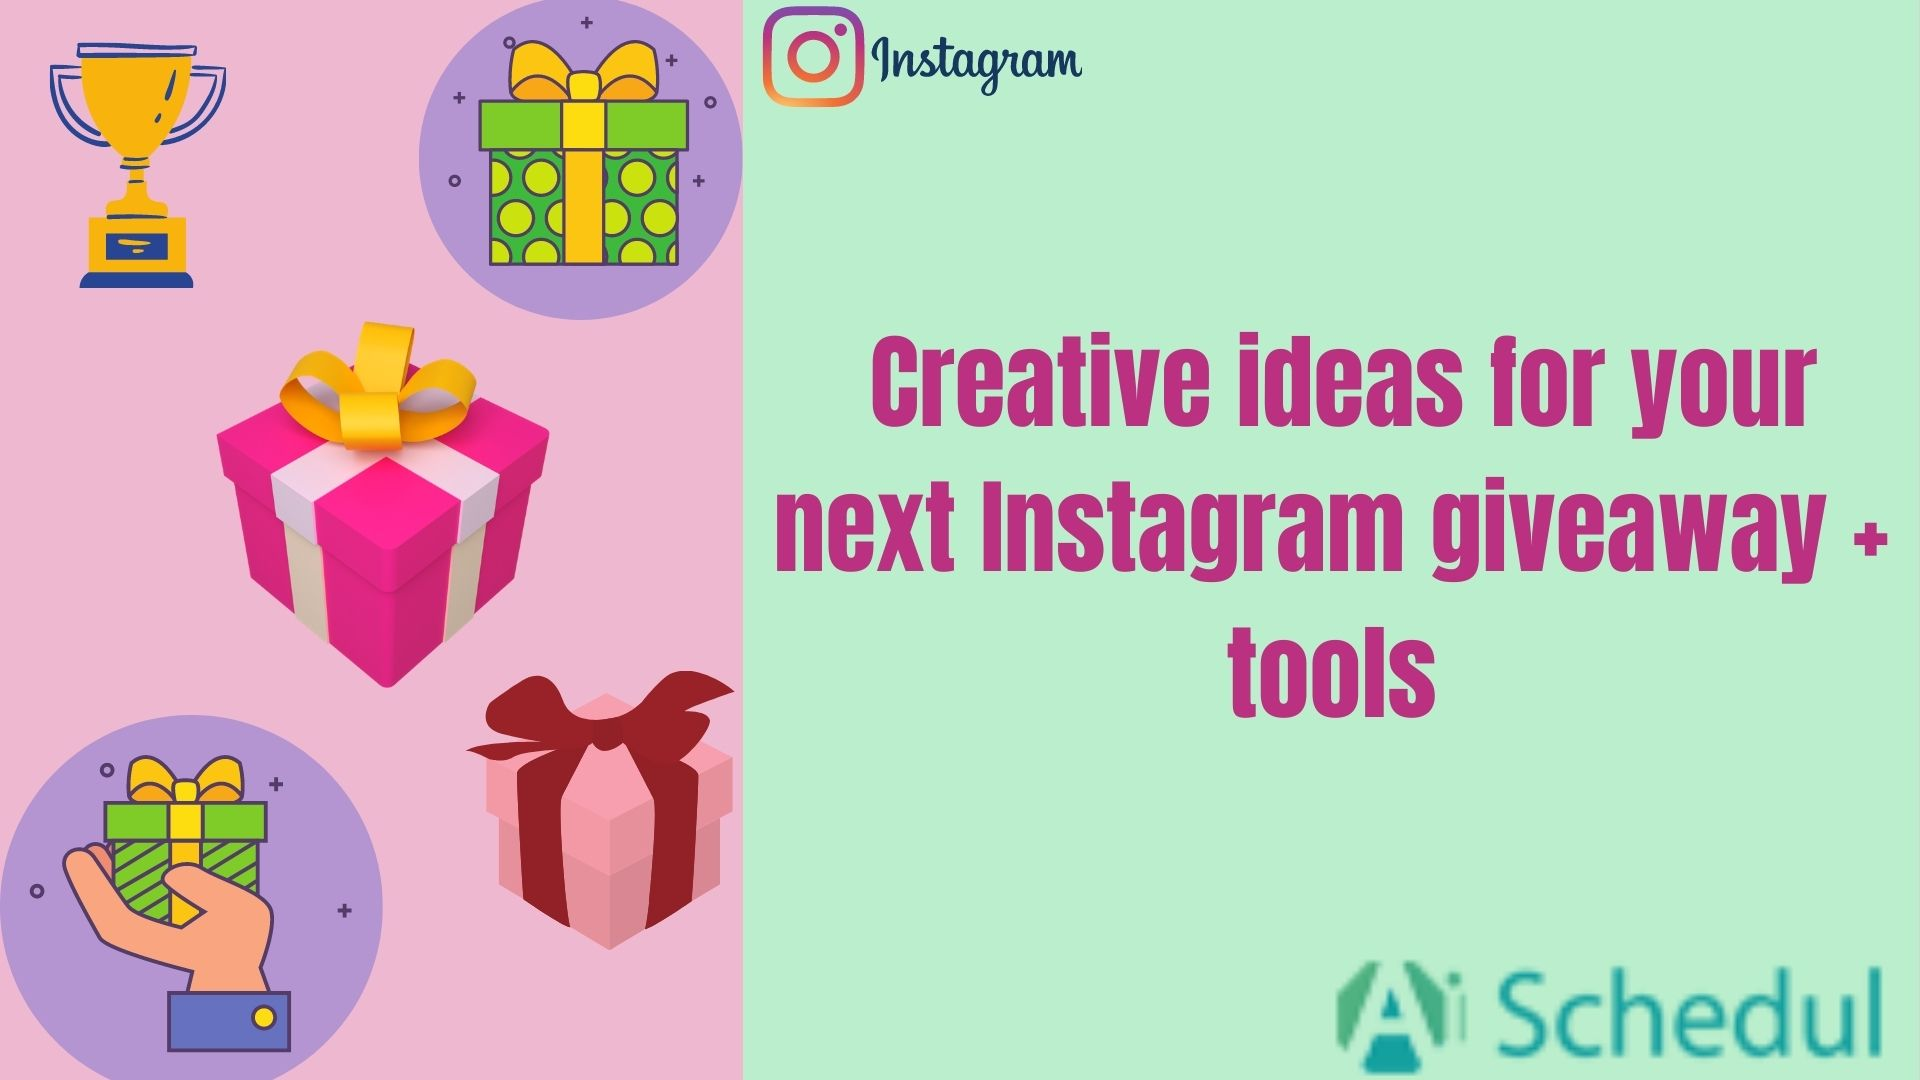 Creative ideas to run a giveaway